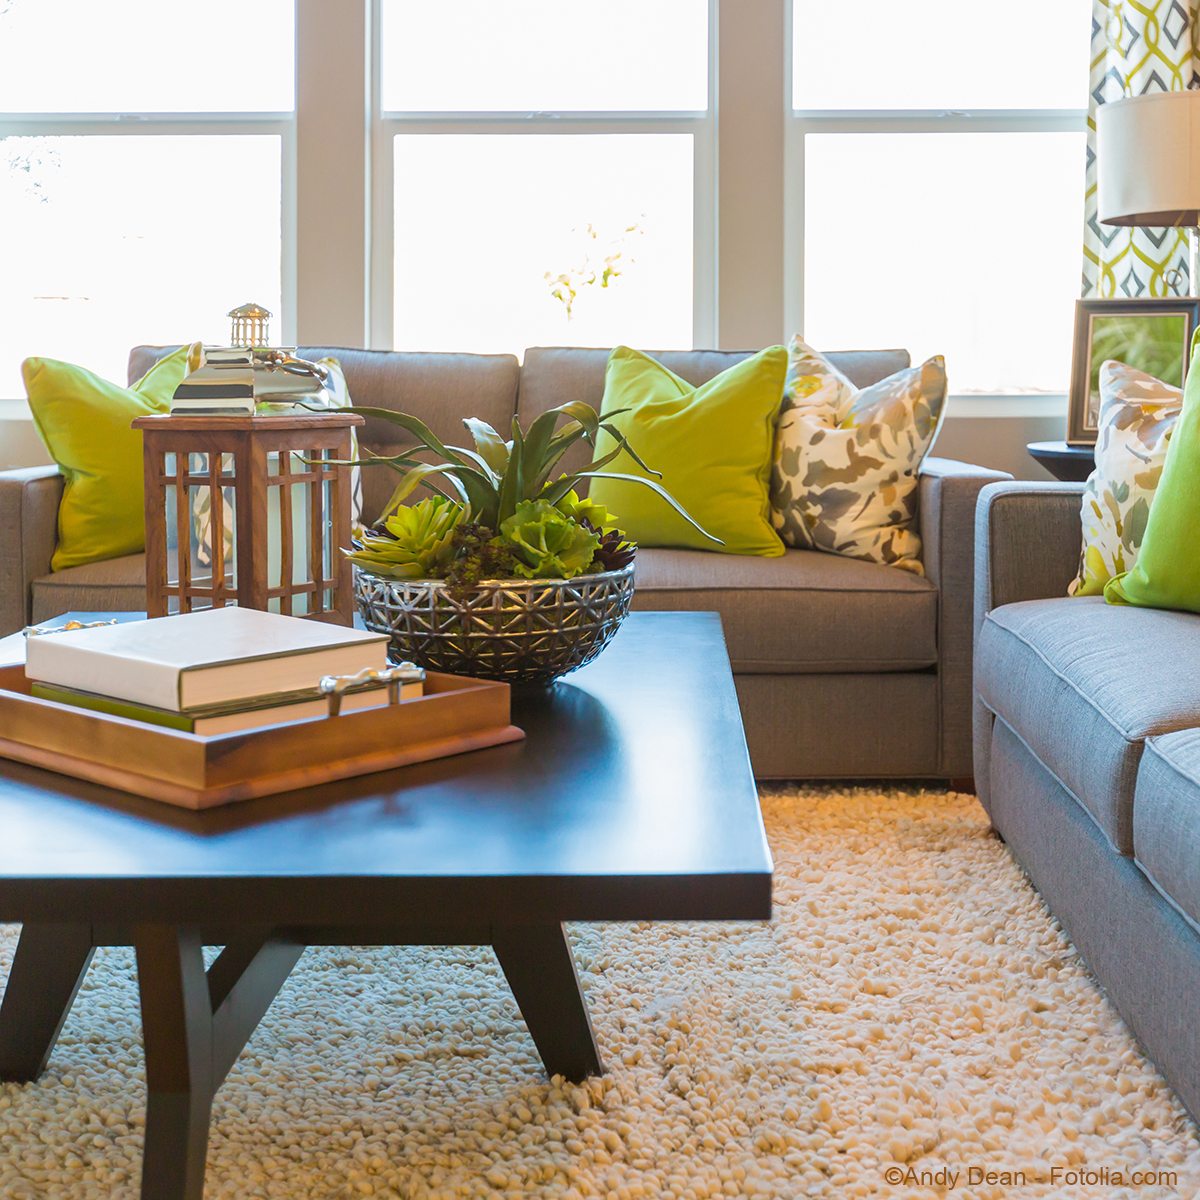 Home Staging Decreases Time On The Market, Finds Realtors